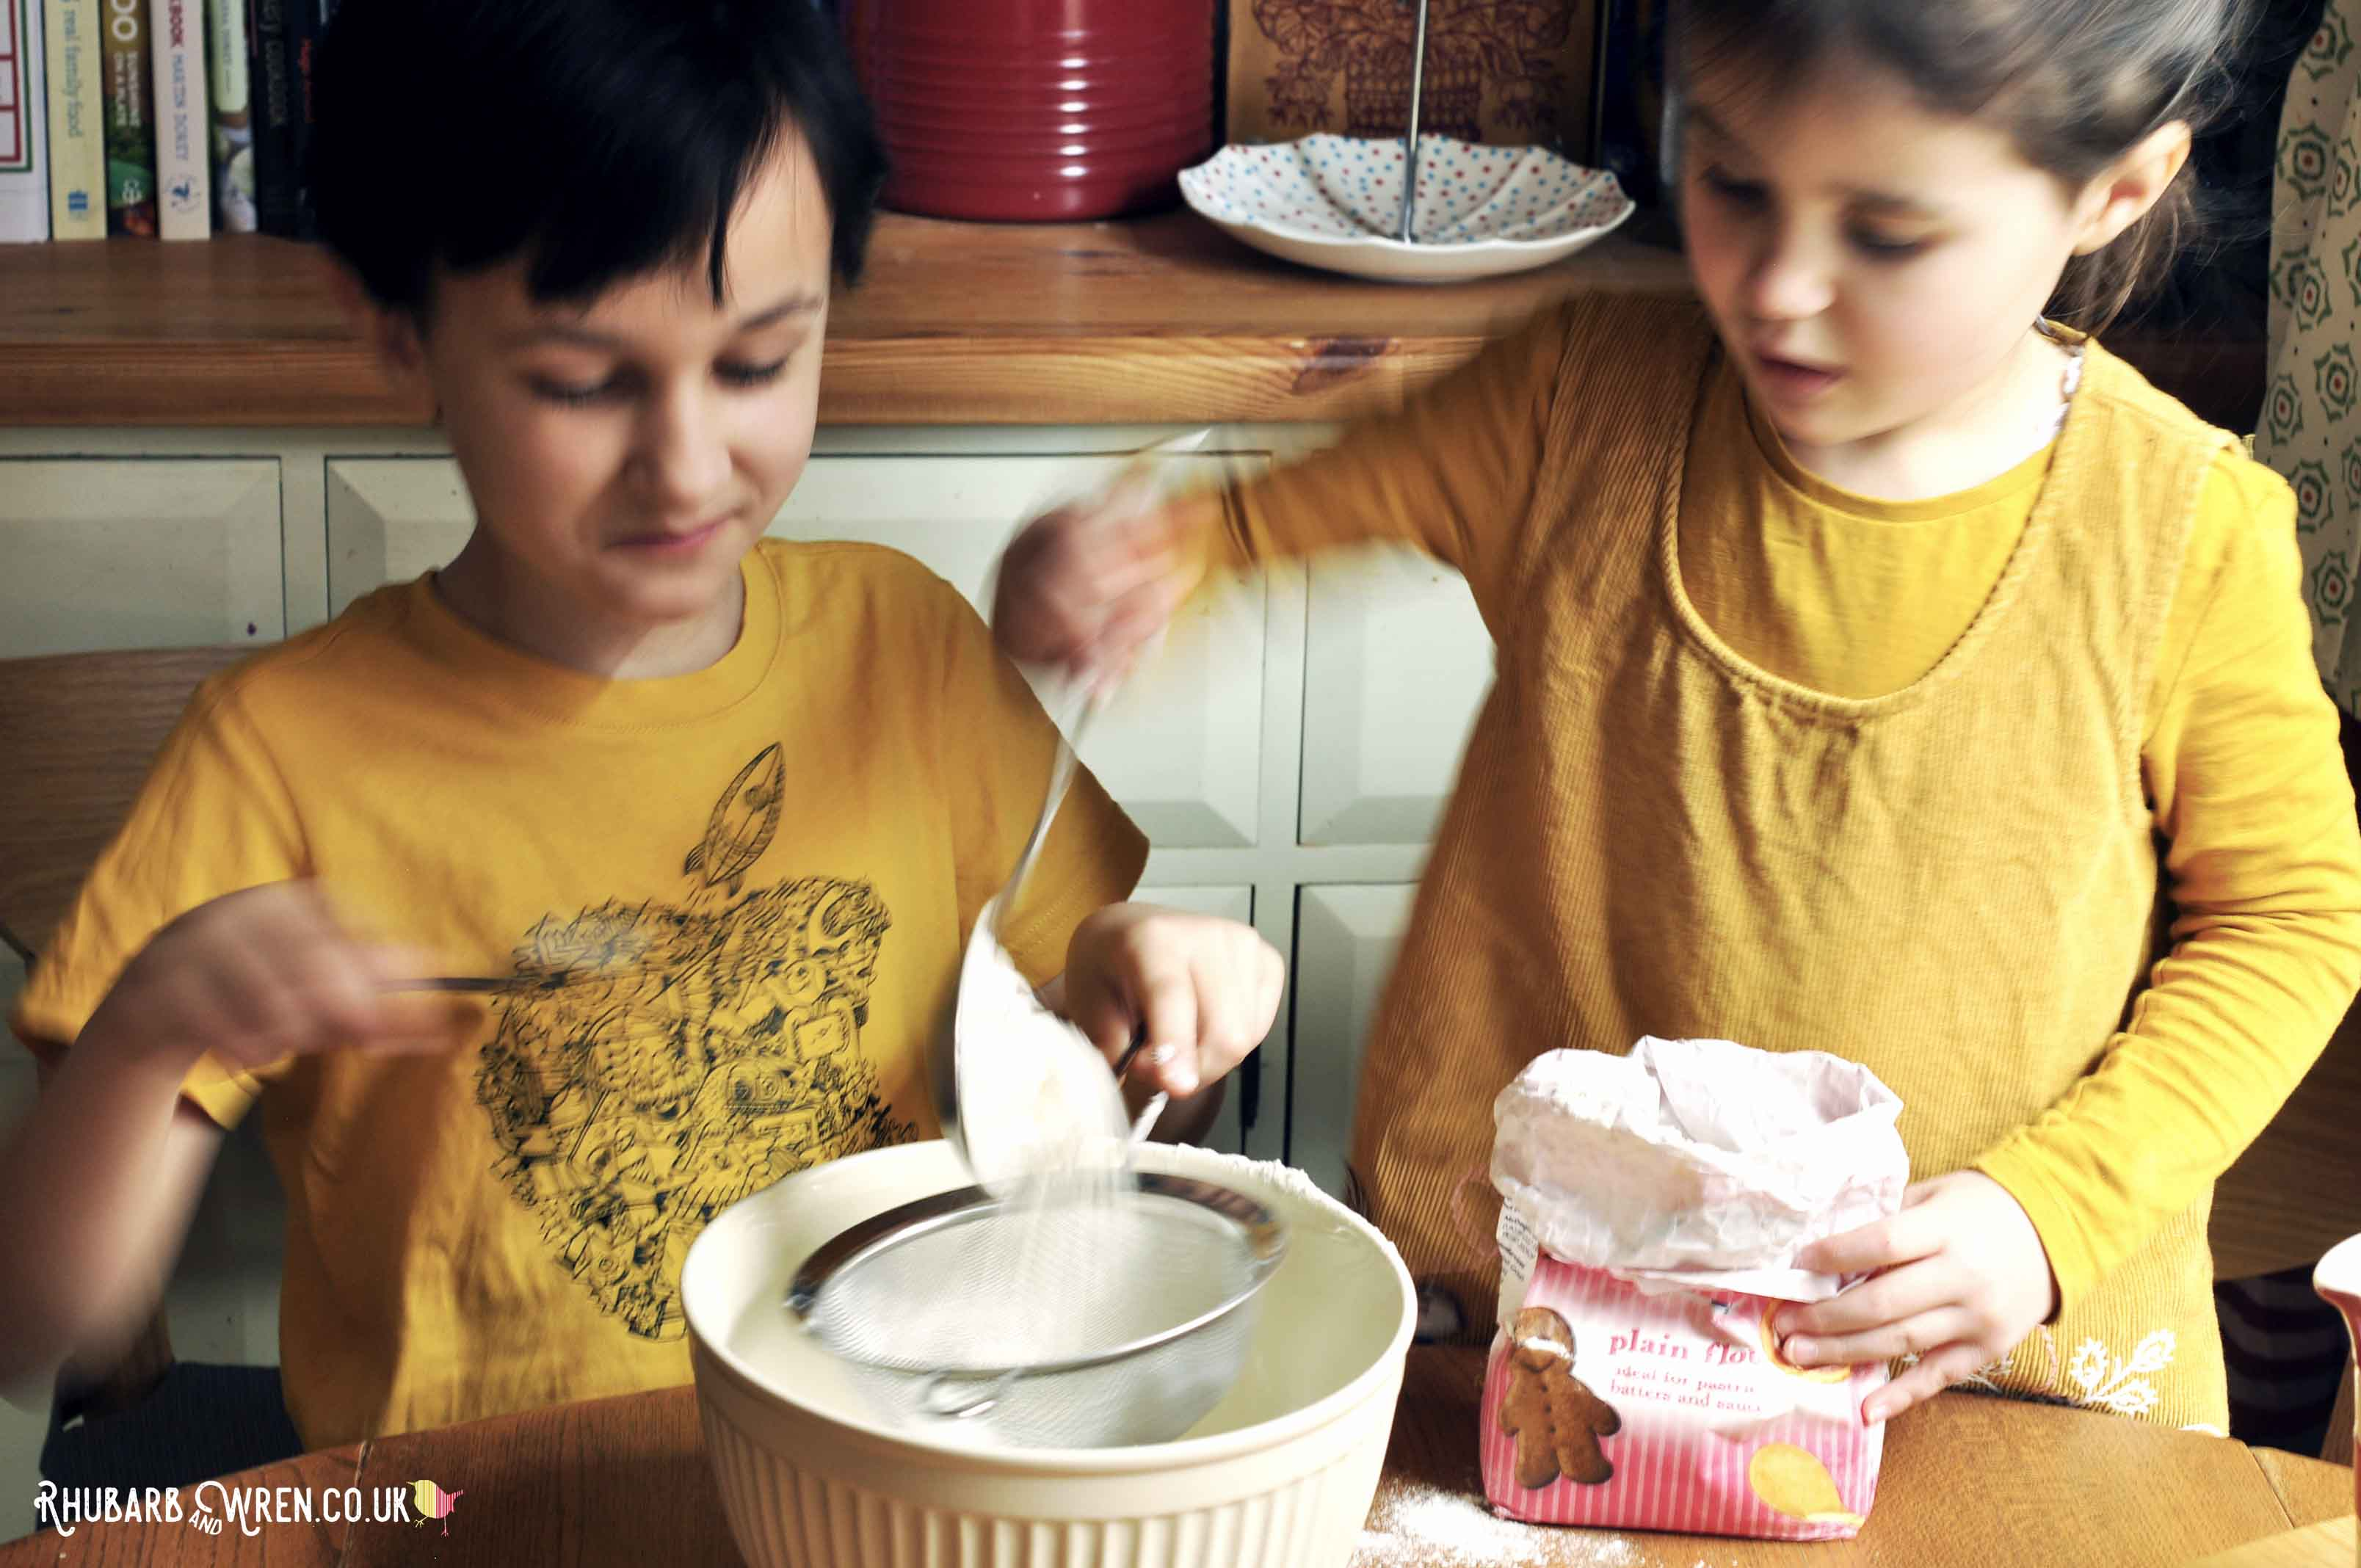 Kids mixing up pancake batter together.